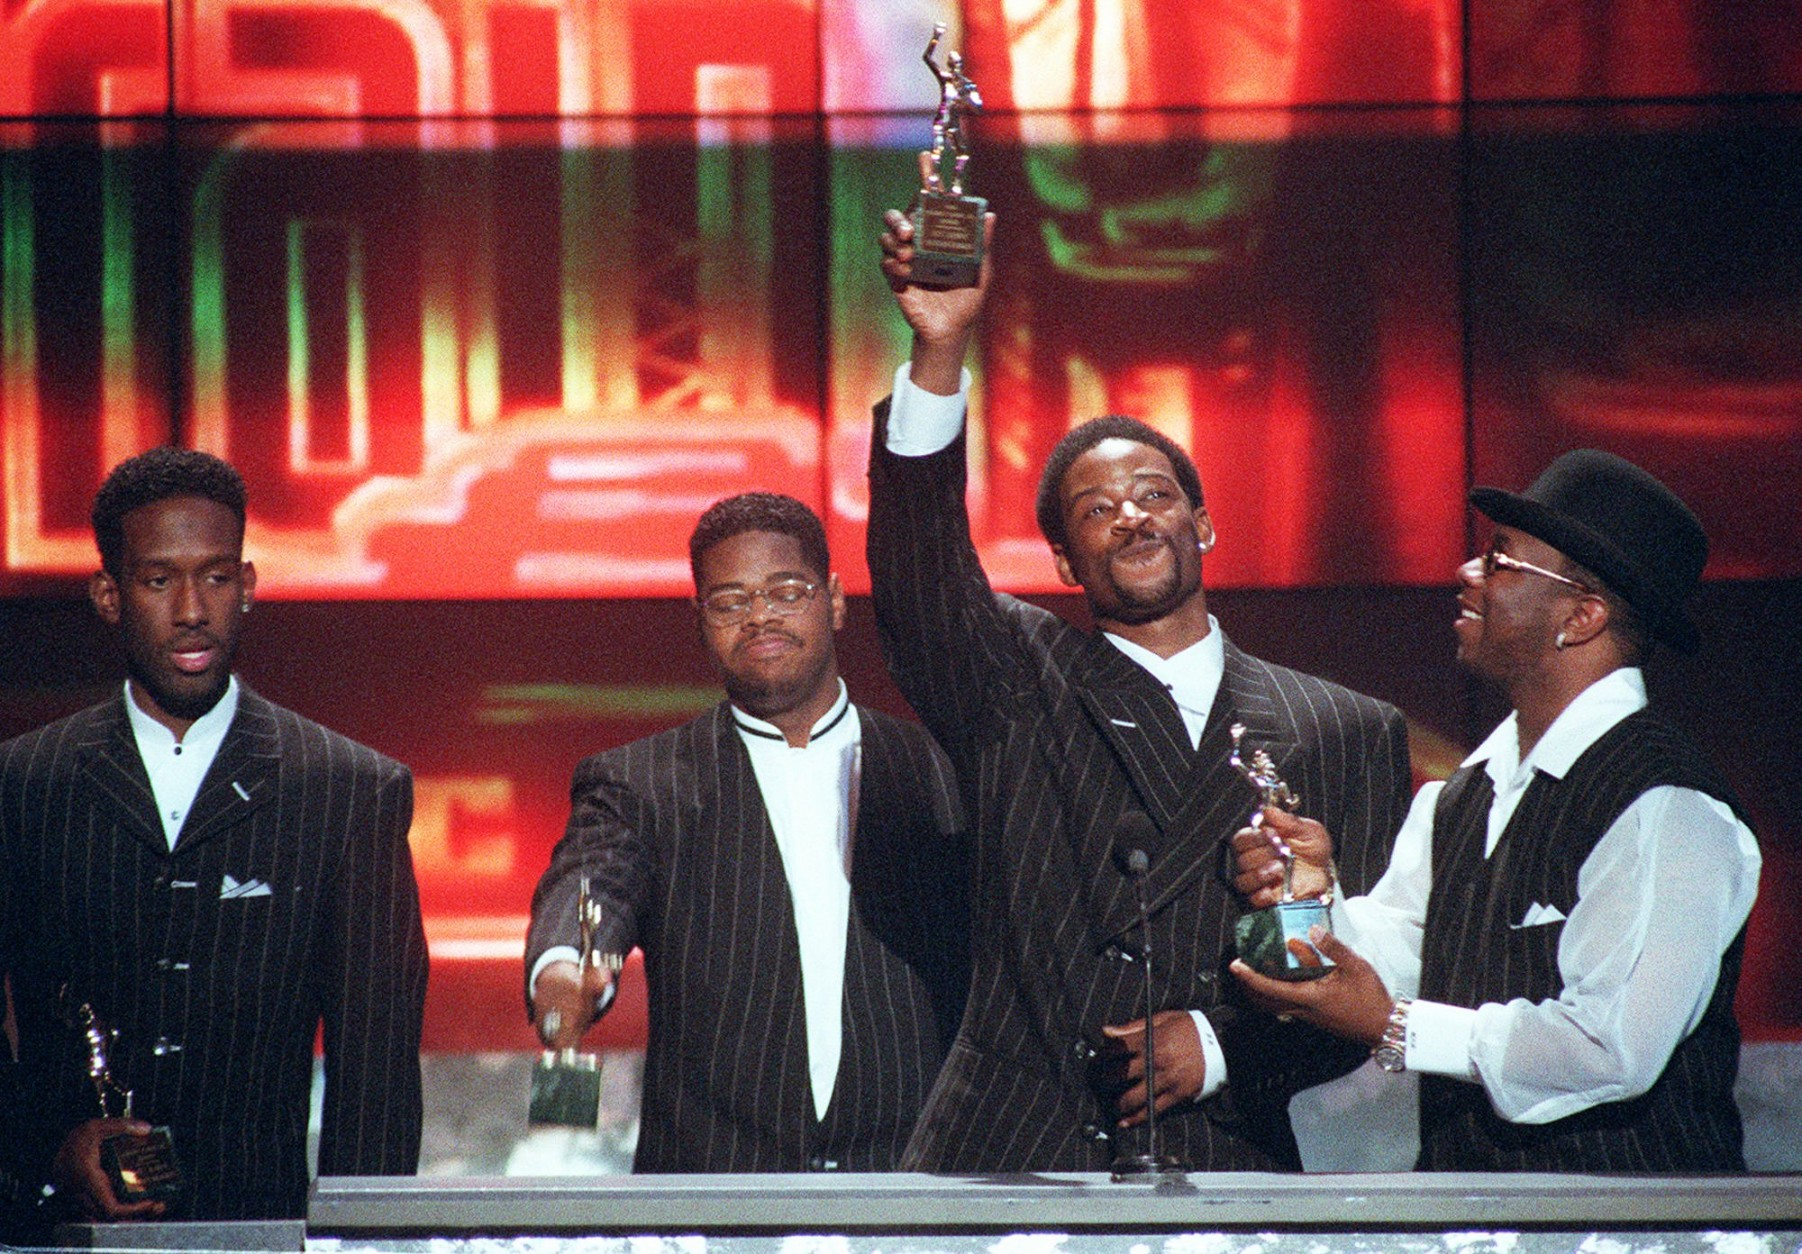 Members of the group Boyz II Men, from left, Shawn Stockman, Michael McCary, Nate Morris and Wanya Morris accept the Sammy Davis Jr. award for Entertainers of the Year at the Soul Train Awards at the Shrine Auditorium in Los Angeles, Friday, March 29, 1996. (AP Photo/Mark J. Terrill)